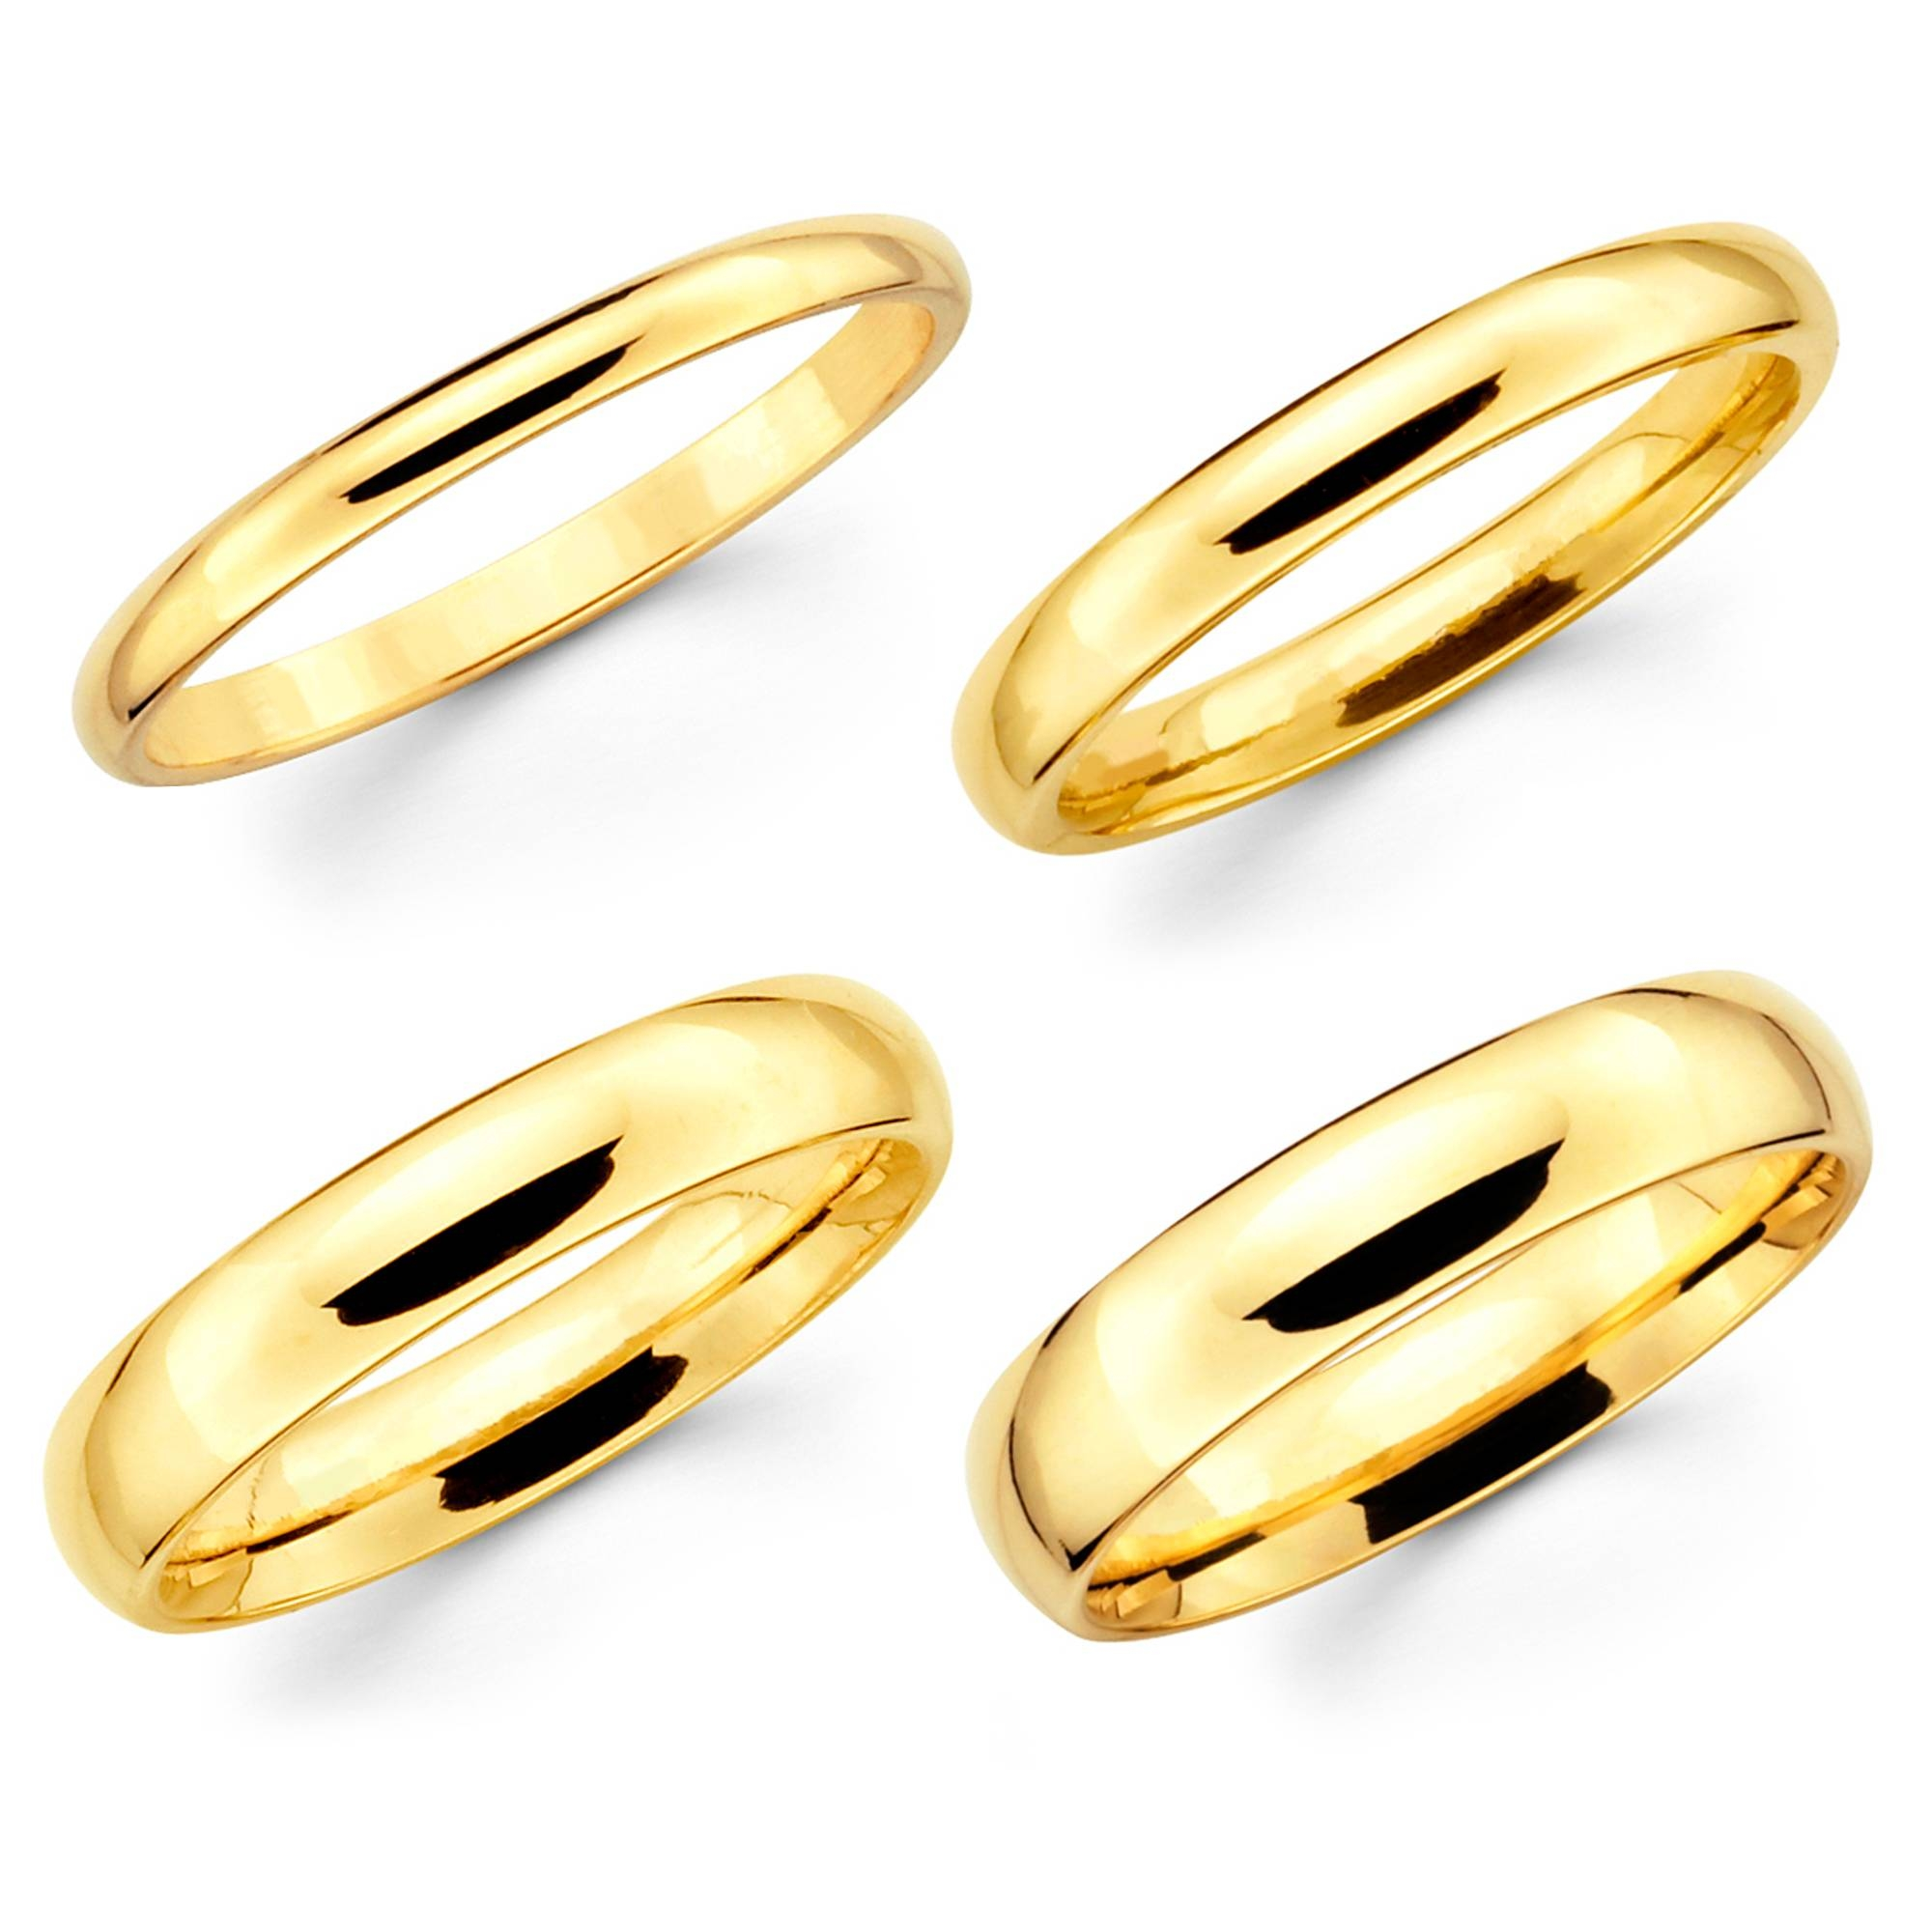 15 collection of 14k yellow gold mens wedding bands